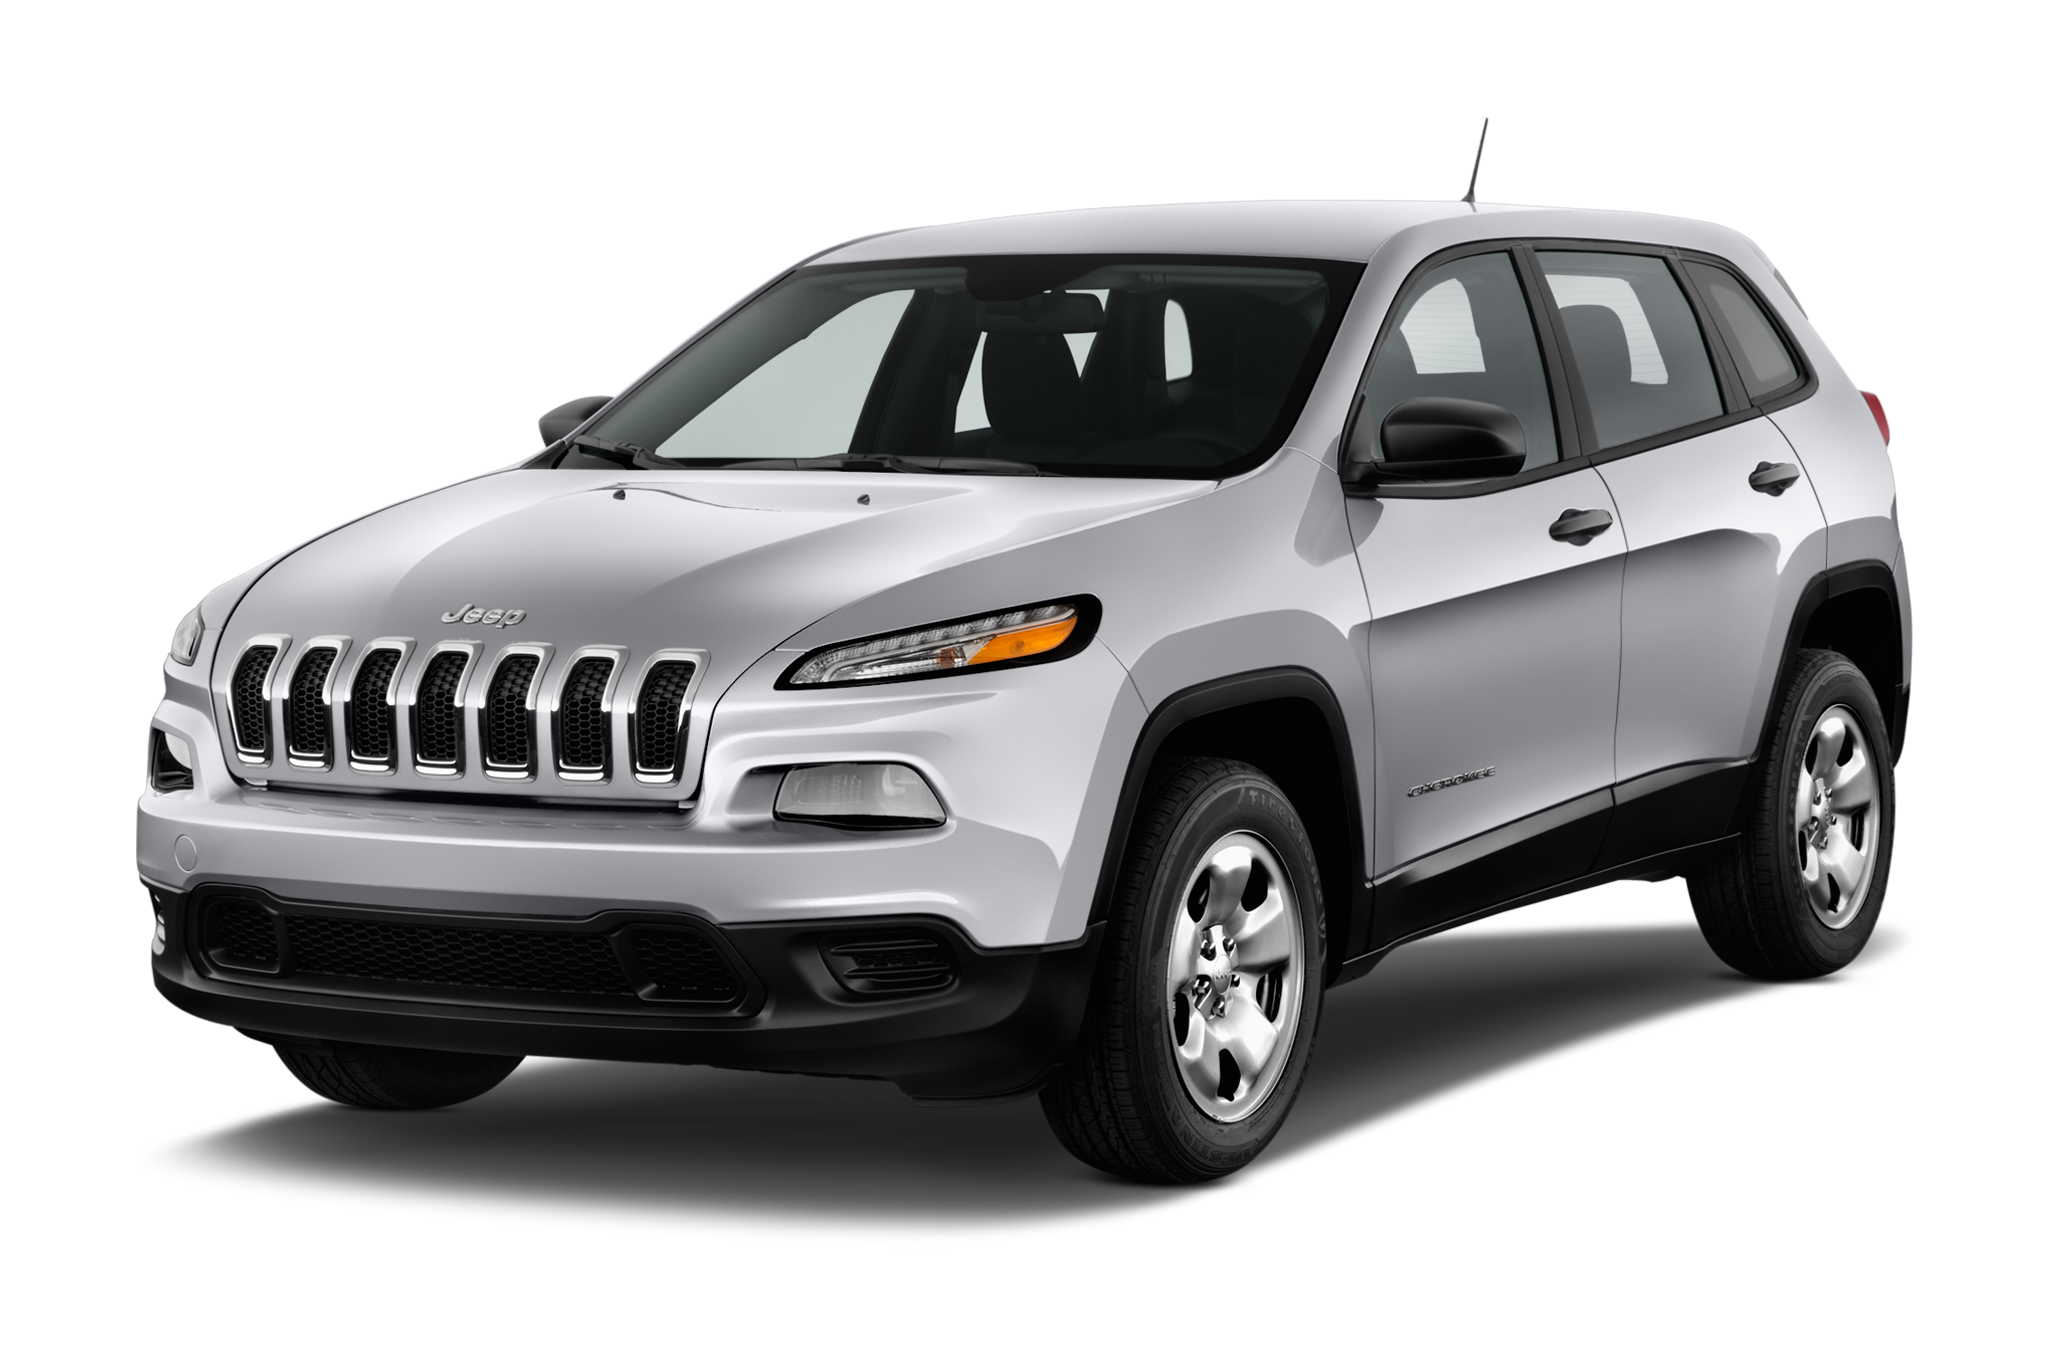 2016 jeep cherokee png. Reviews and rating